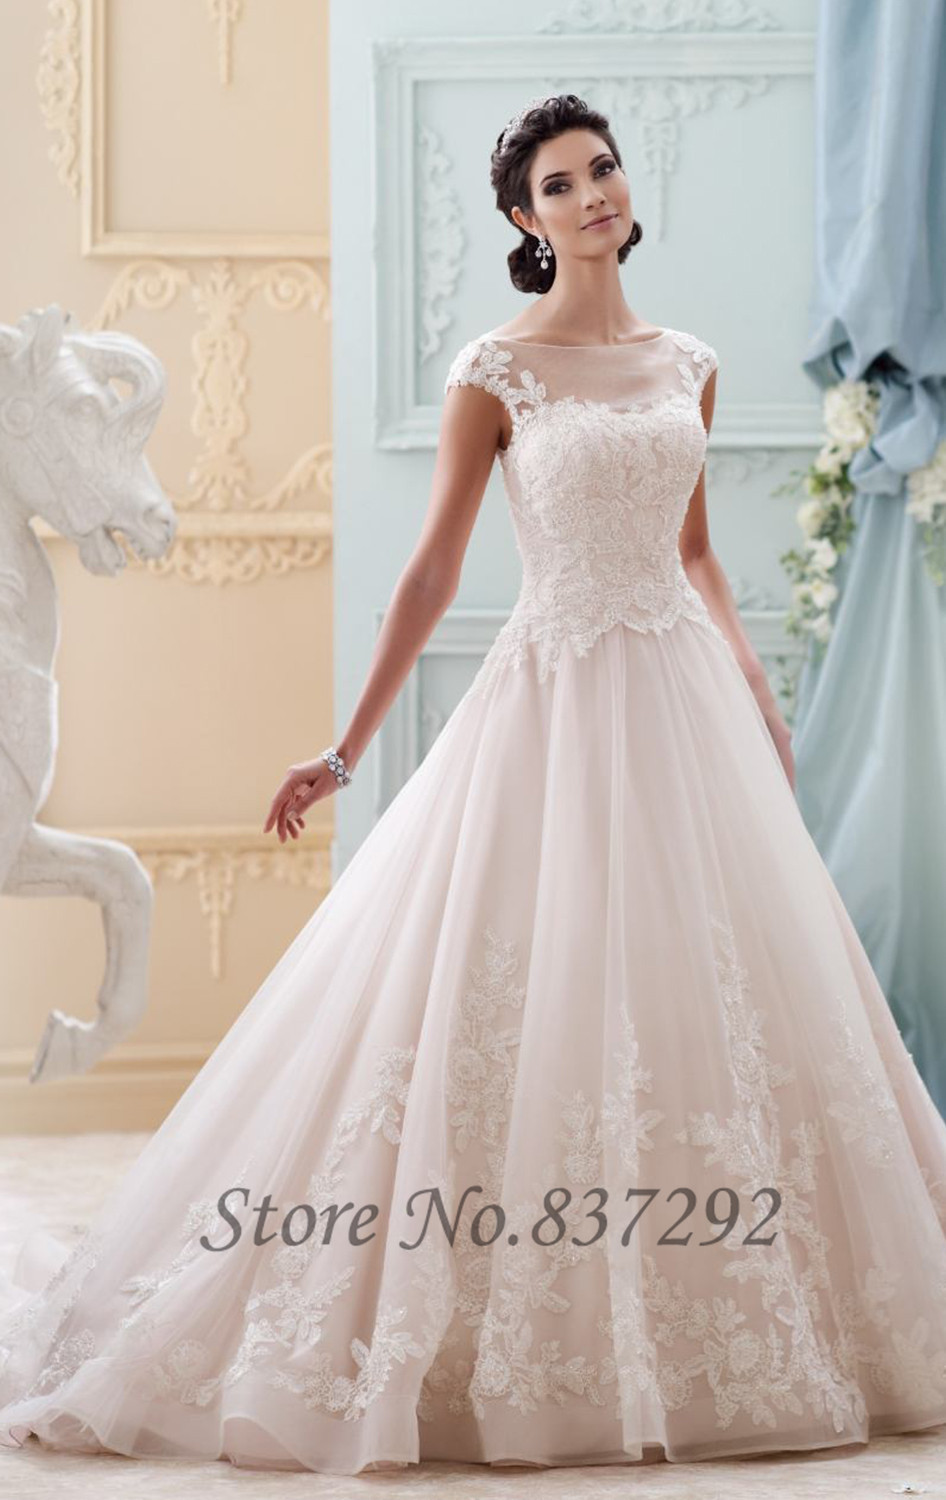 Hot sell vintage wedding dress lace vestido de noiva for Sell wedding dress for free